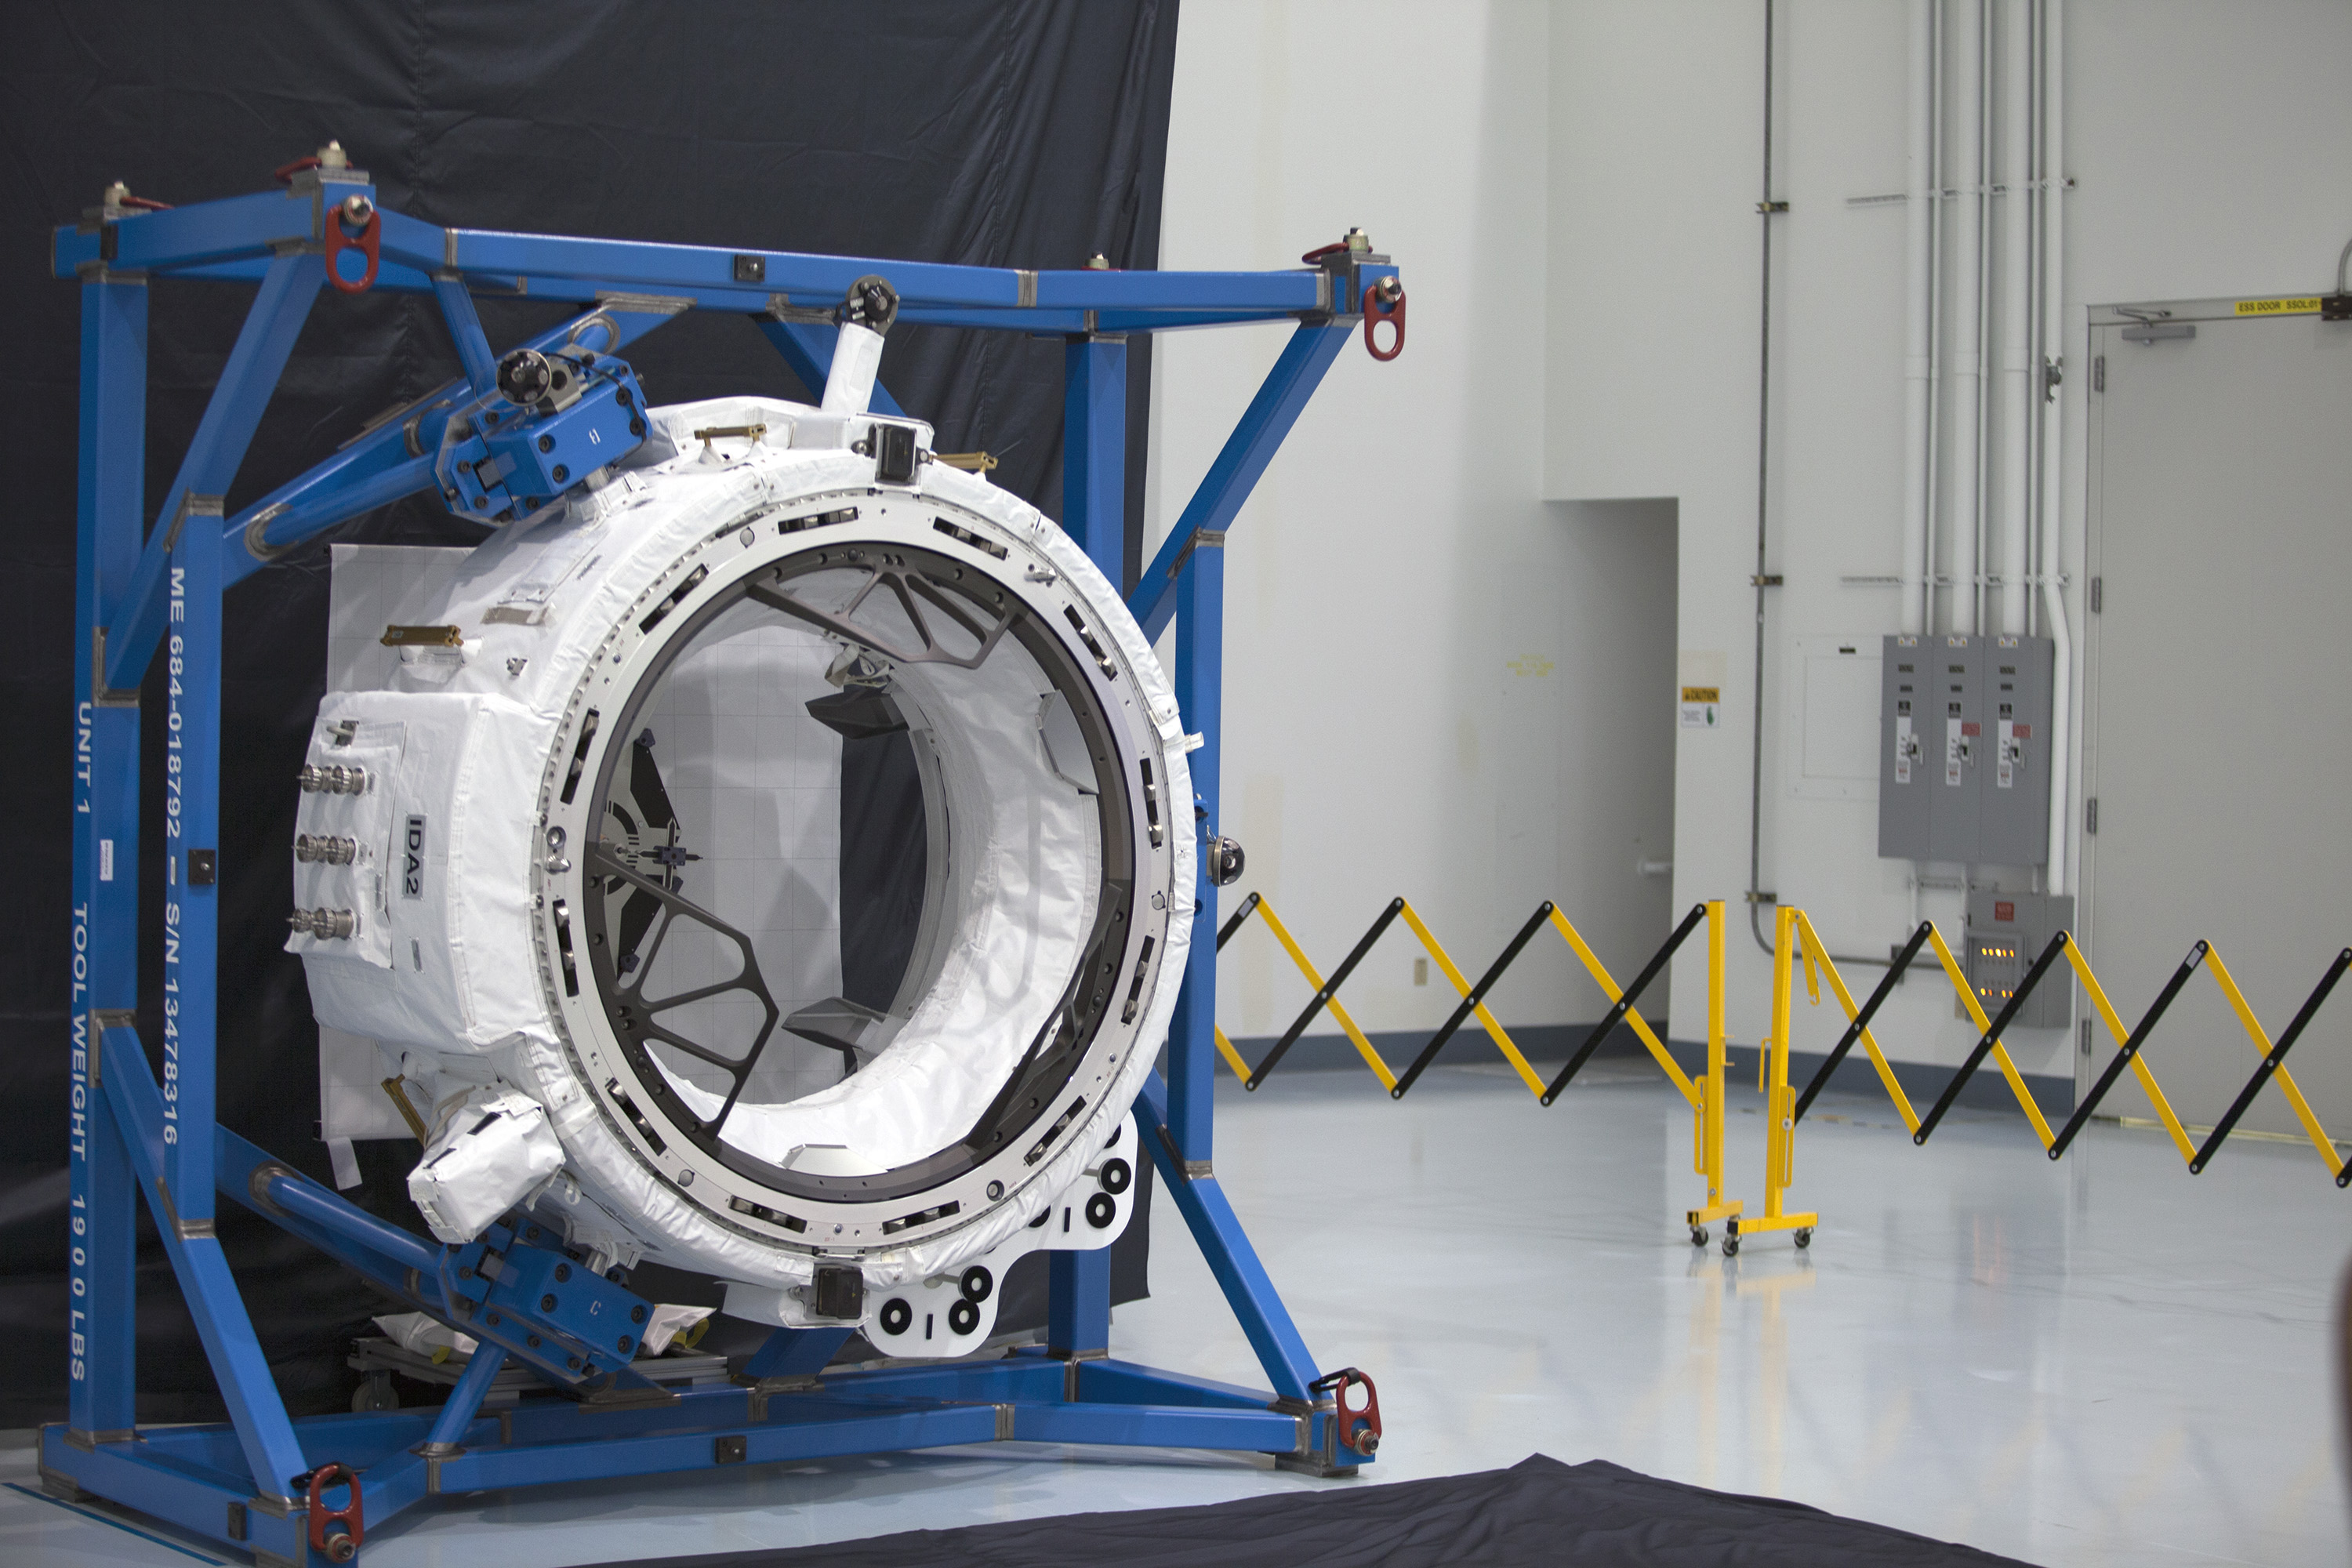 SpaceX to Launch Vital New Spaceship Docking Port for Space Station